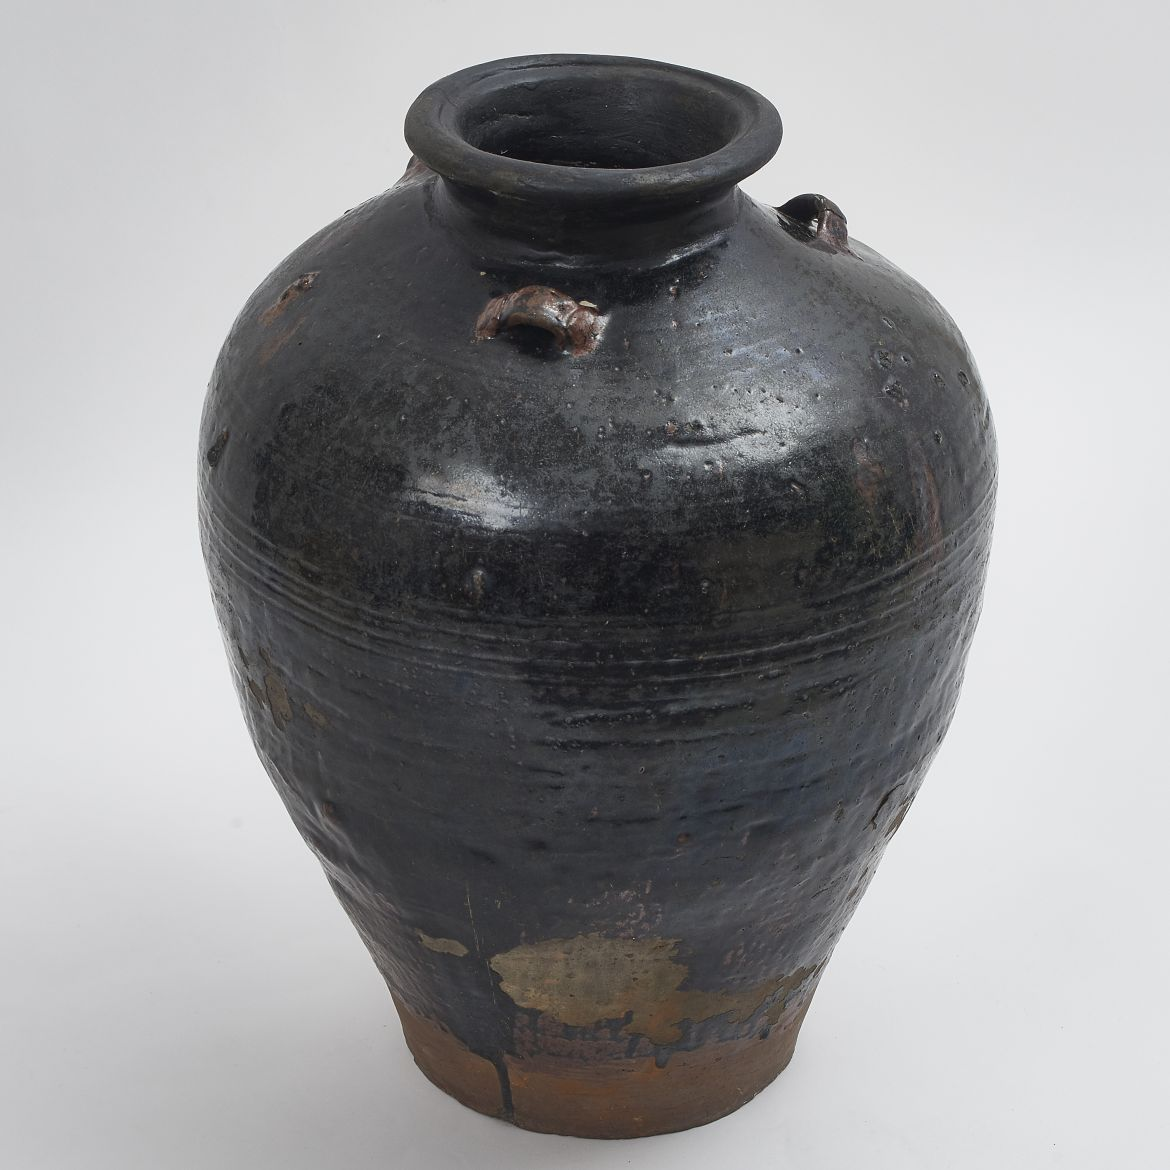 19th Century Water Jar